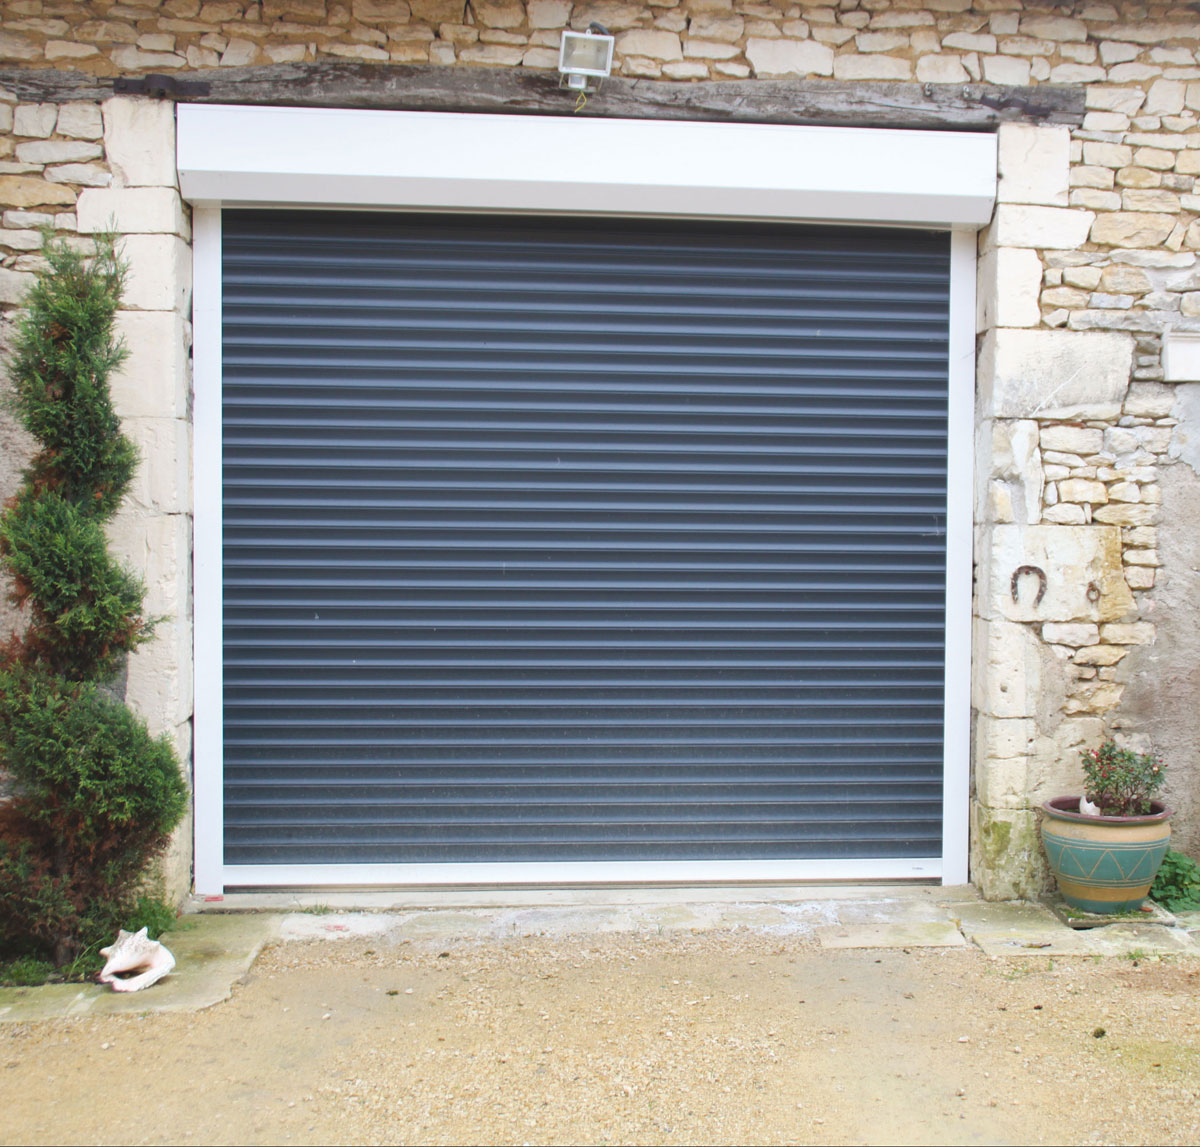 Porte de garage rouleau isolation id es - Rideau de garage enroulable ...